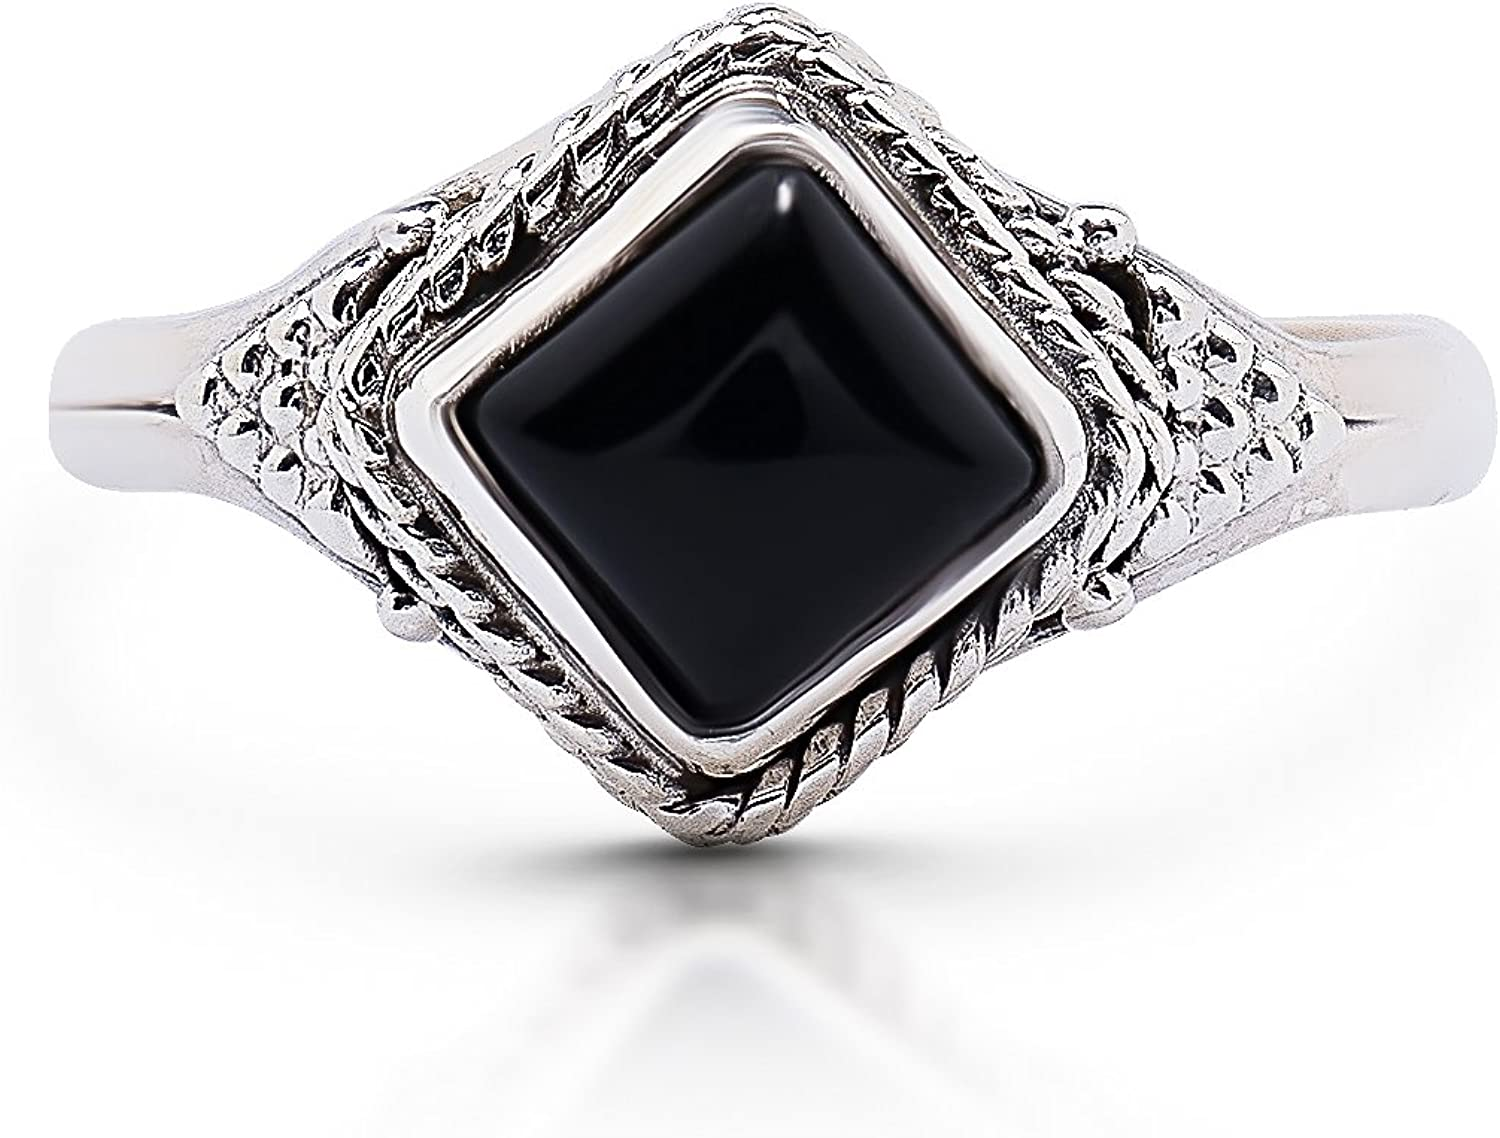 Onix square stone in bezel and Silver 925 band